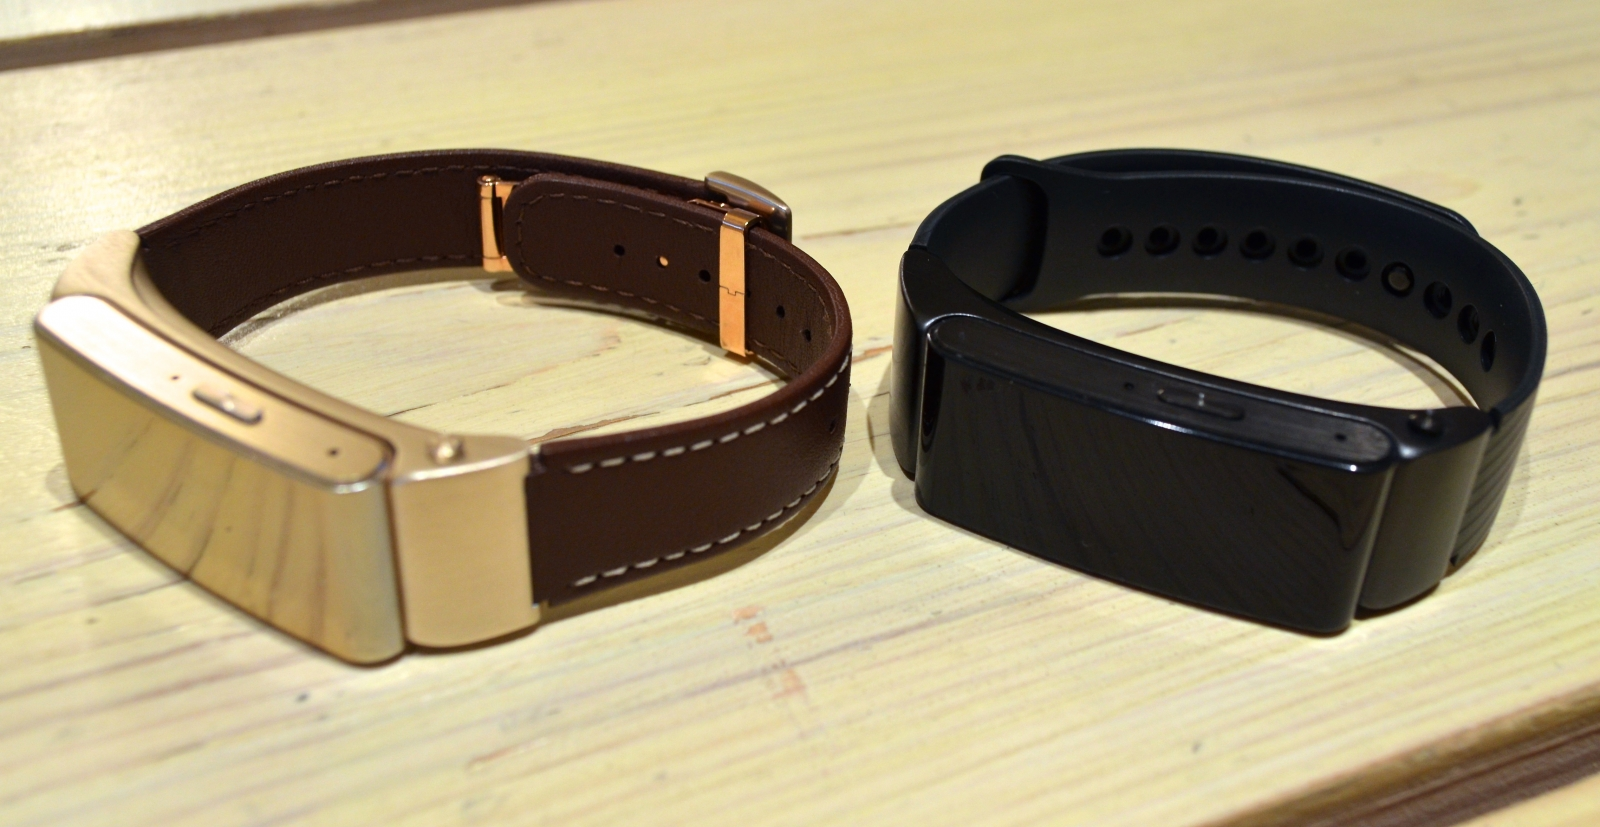 Huawei Talk Band B2